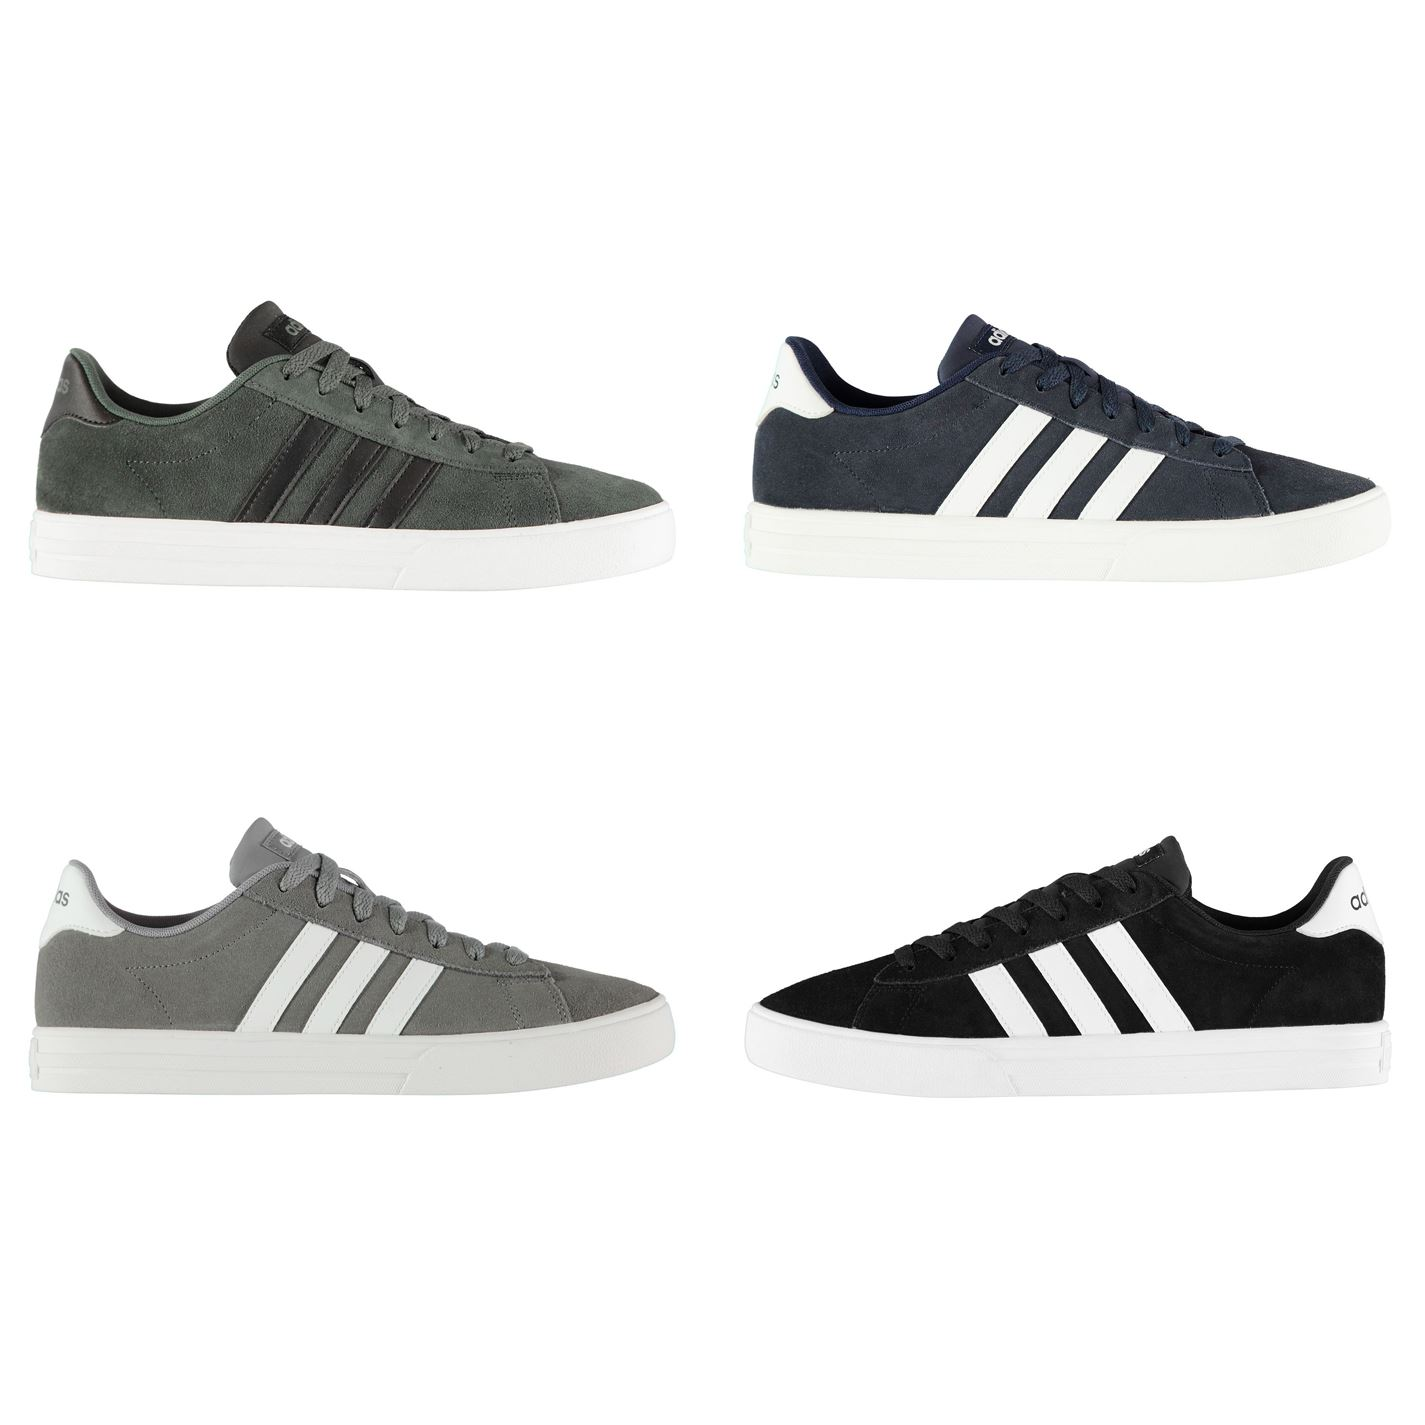 sports shoes 8eb7d 88348 ... adidas Daily Suede Trainers Mens Athleisure Footwear Shoes Sneakers ...